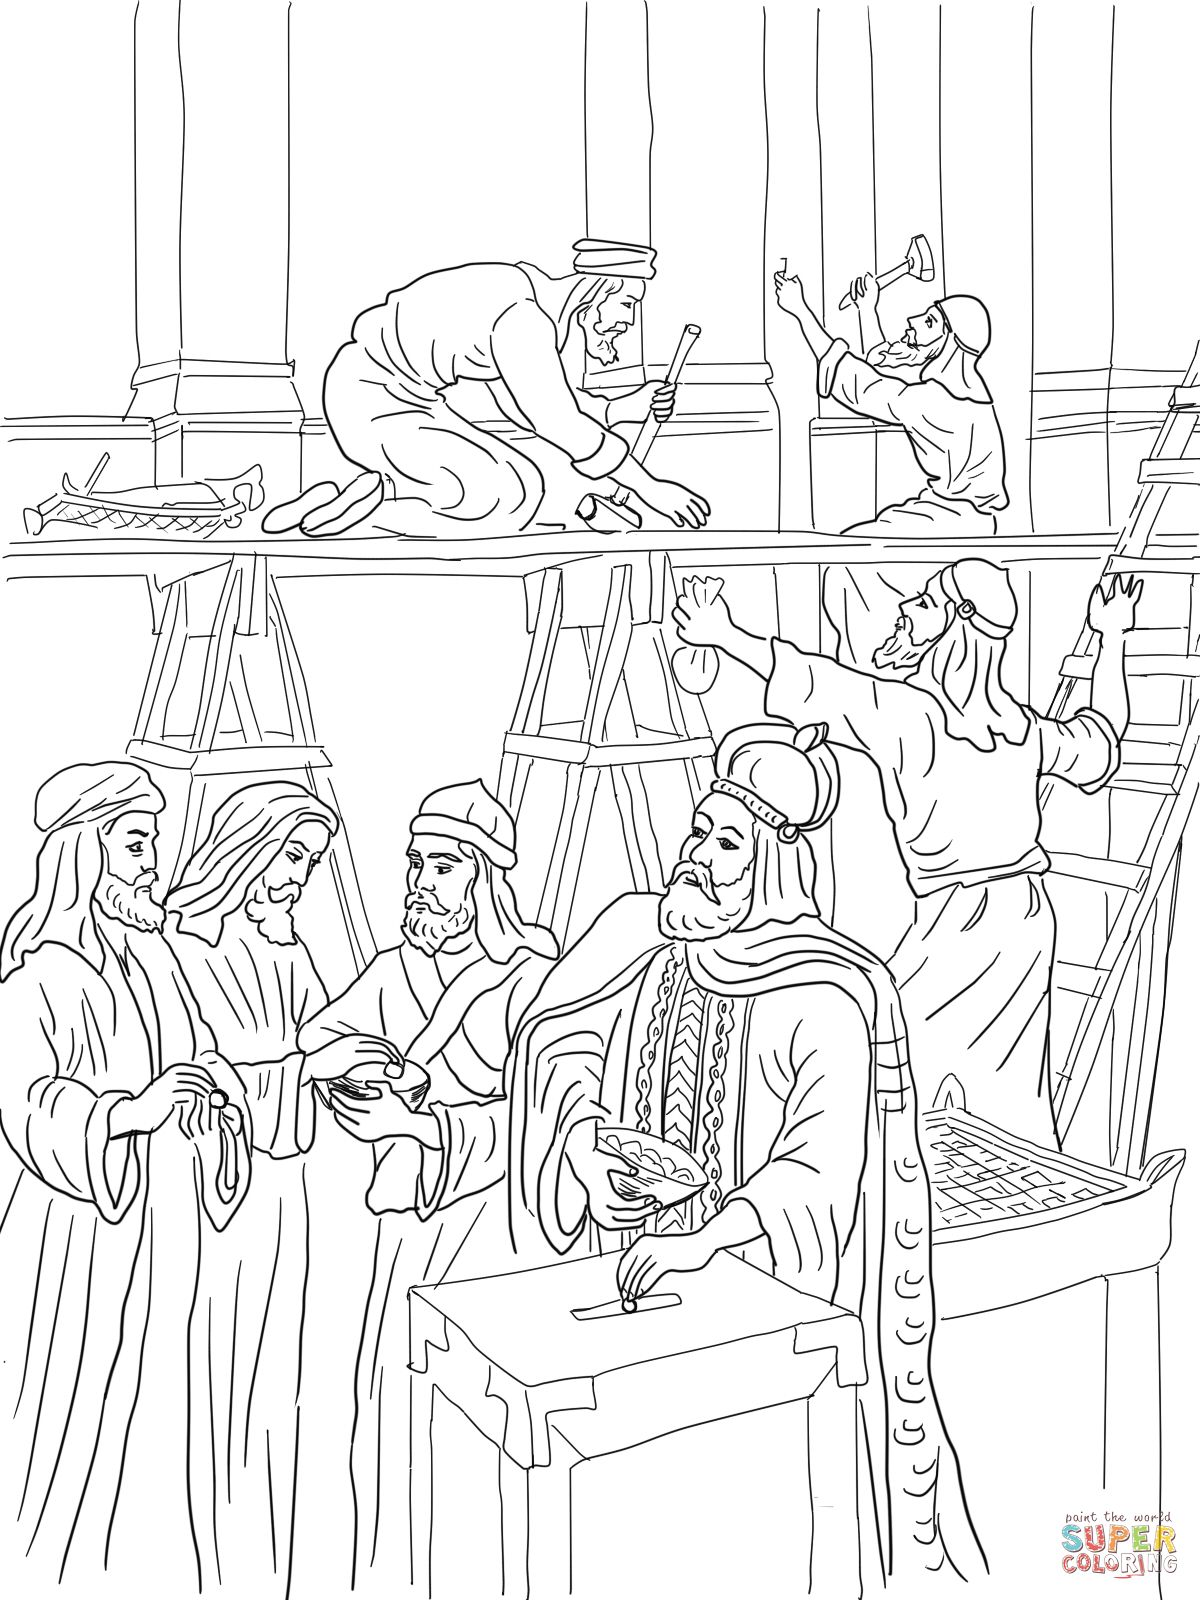 Joash Repairs The Temple Coloring Page Supercoloring Com Bible